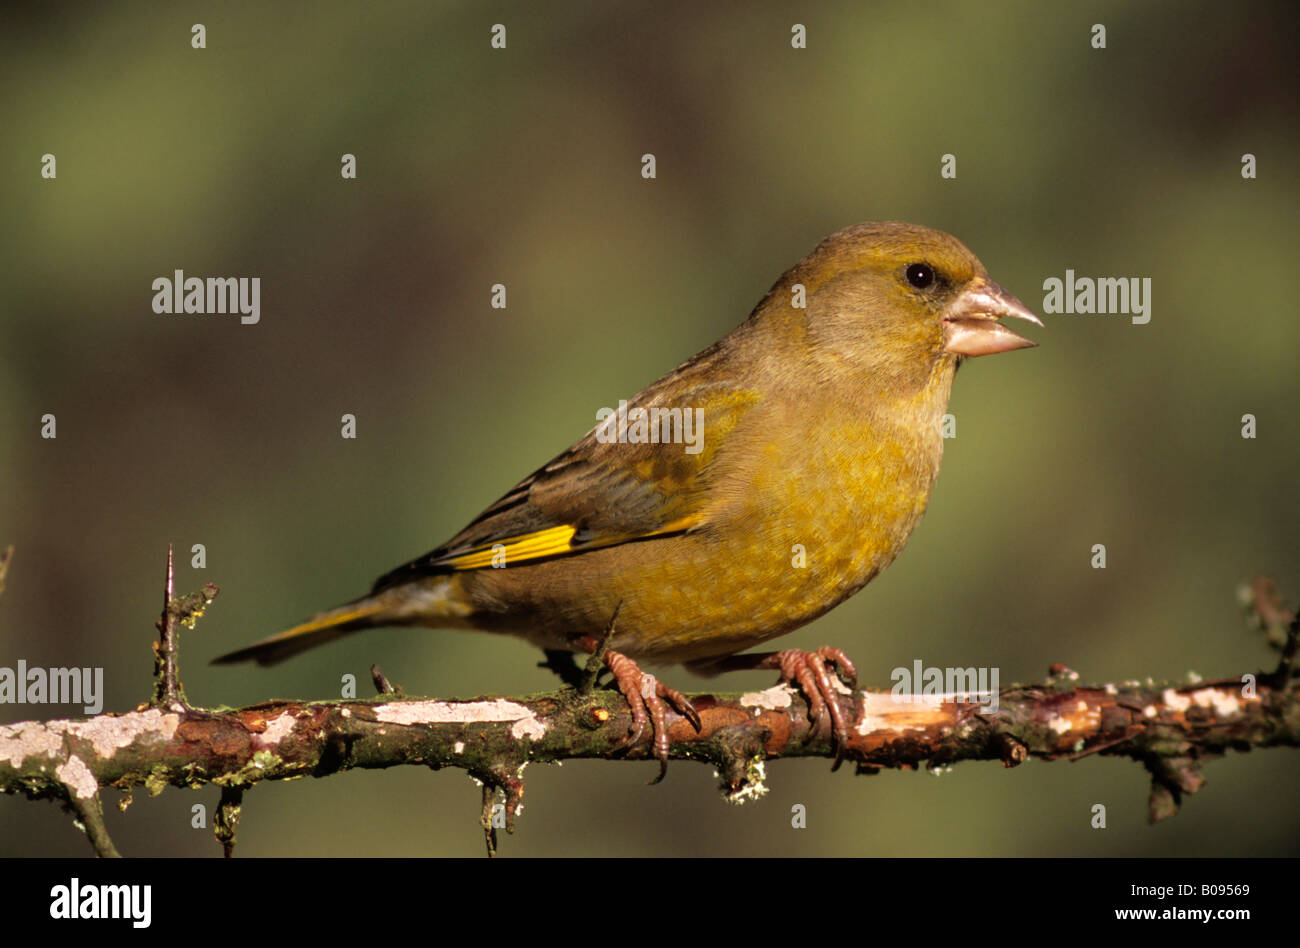 European Greenfinch (Carduelis chloris), finch family - Stock Image